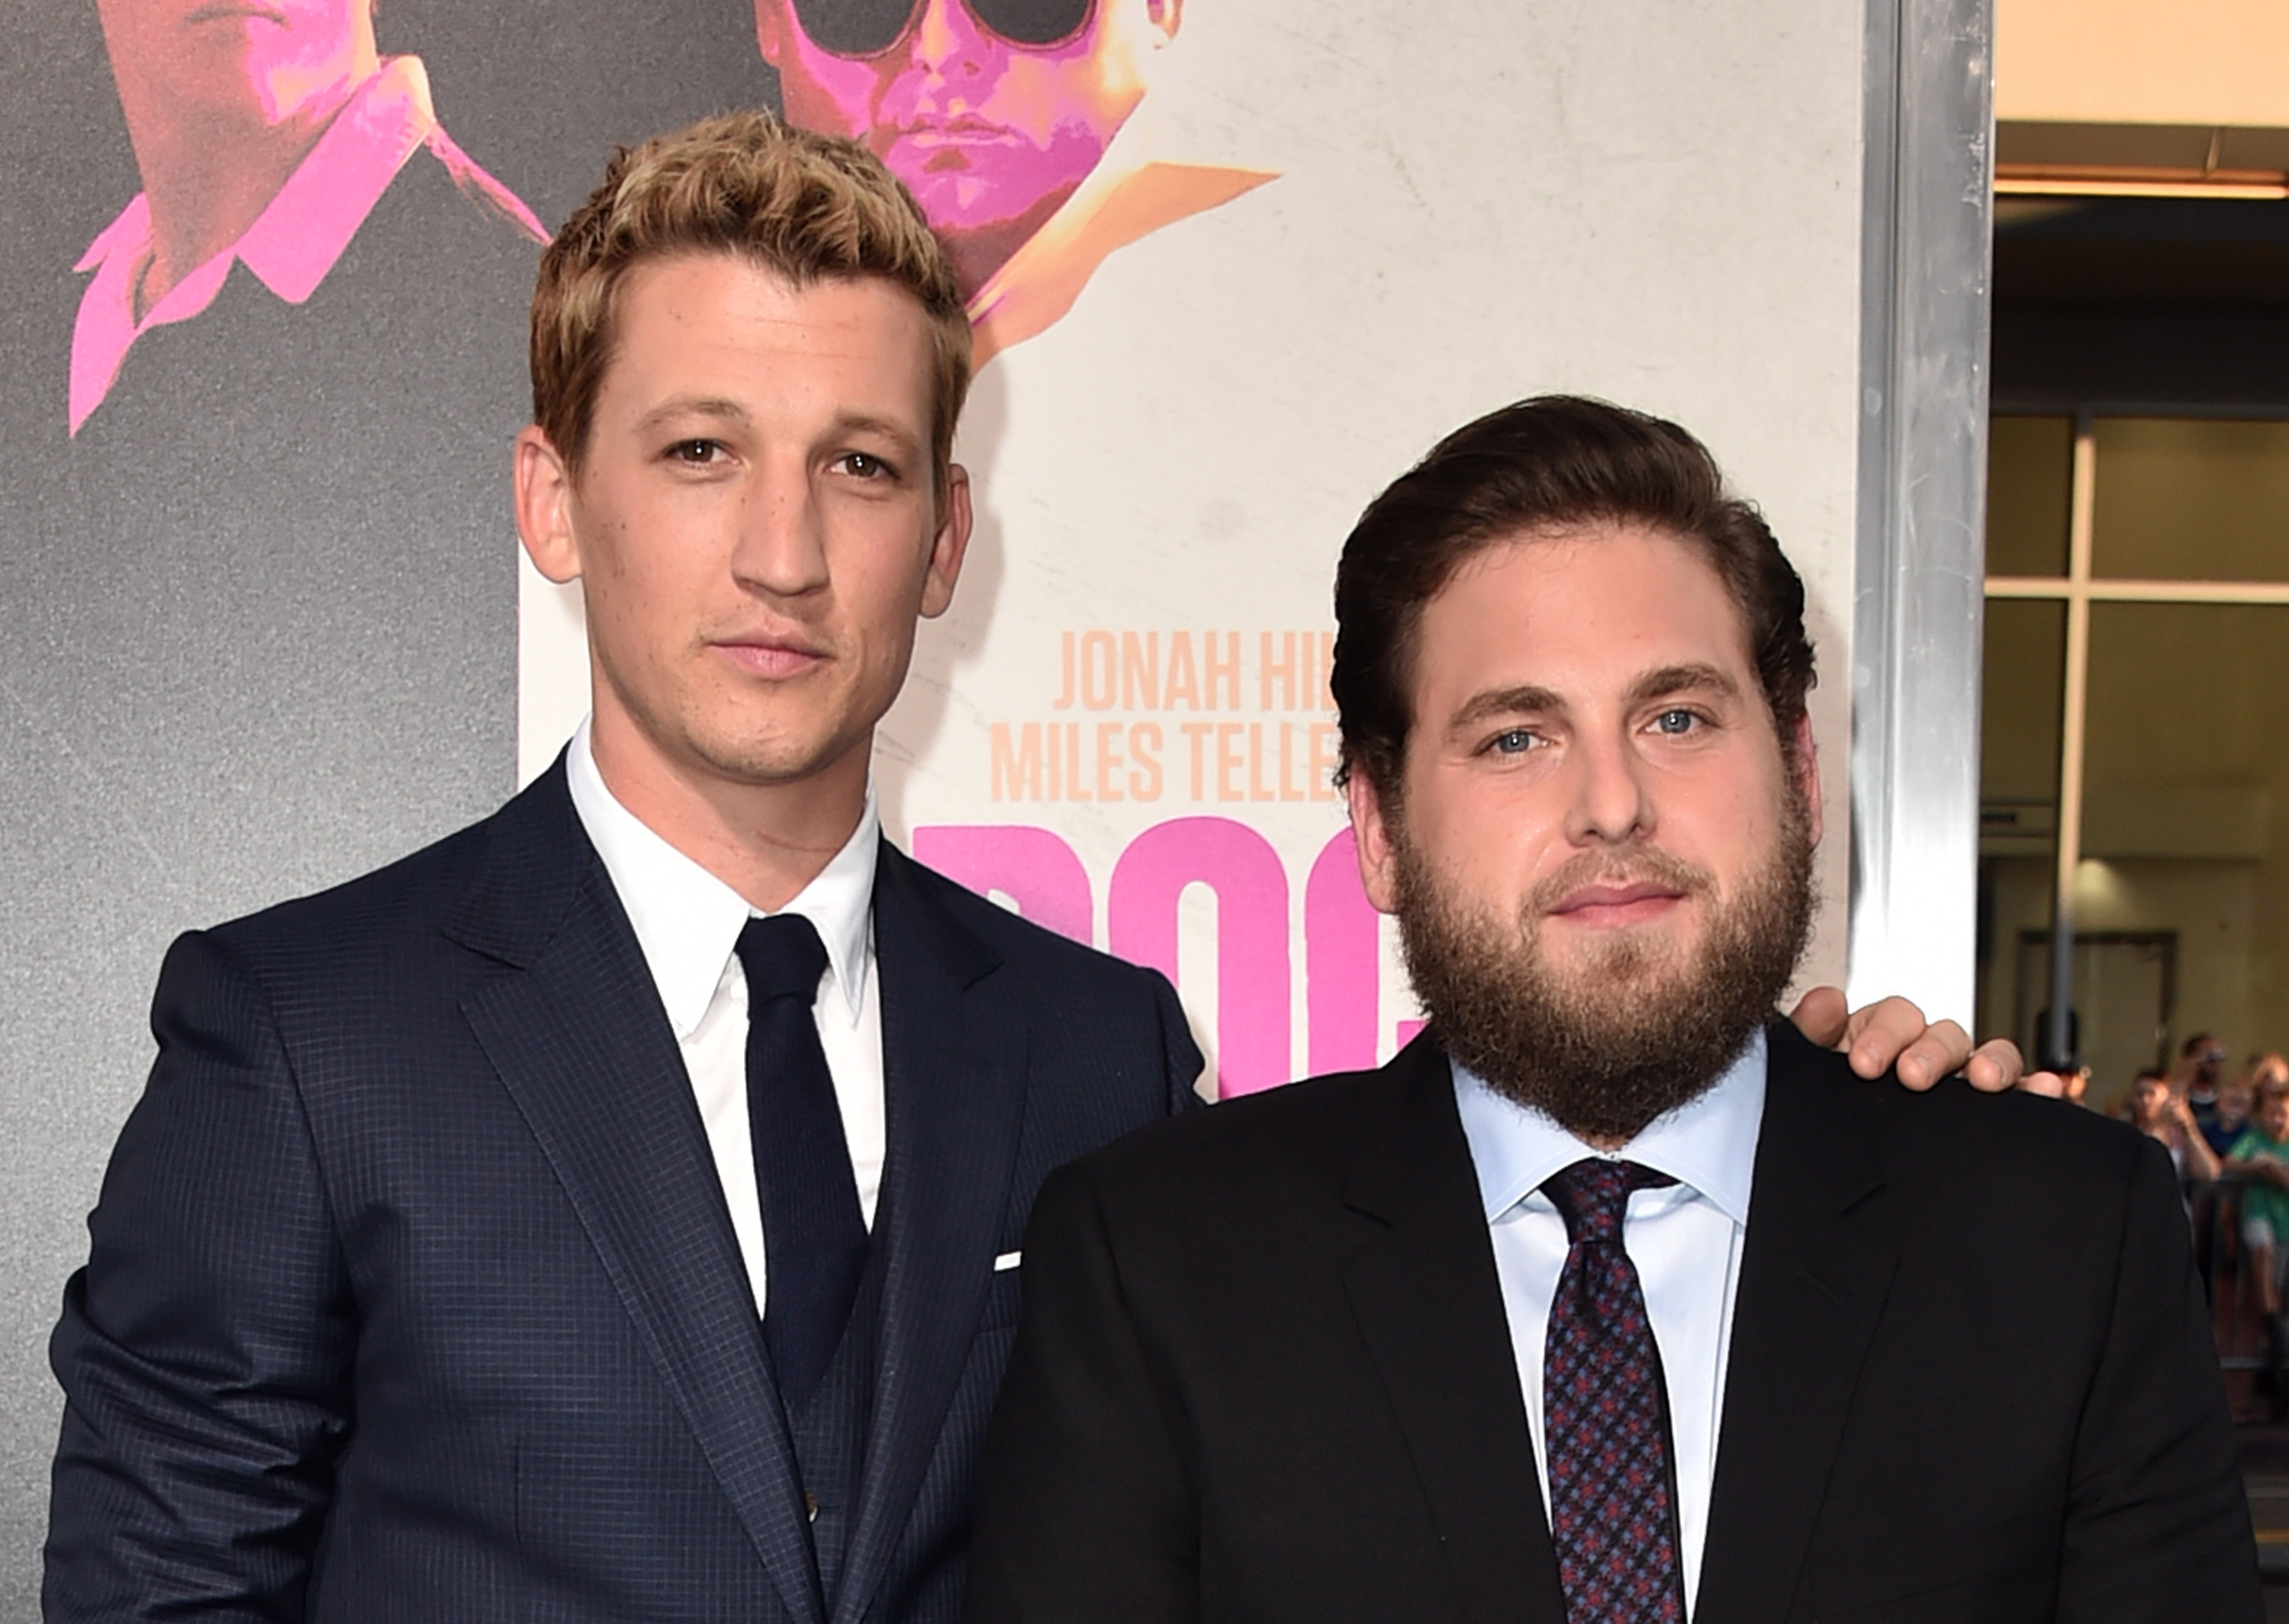 Actors Miles Teller (L) and Jonah Hill attend the premiere of Warner Bros. Pictures'  War Dogs  at TCL Chinese Theatre on August 15, 2016 in Hollywood, California.